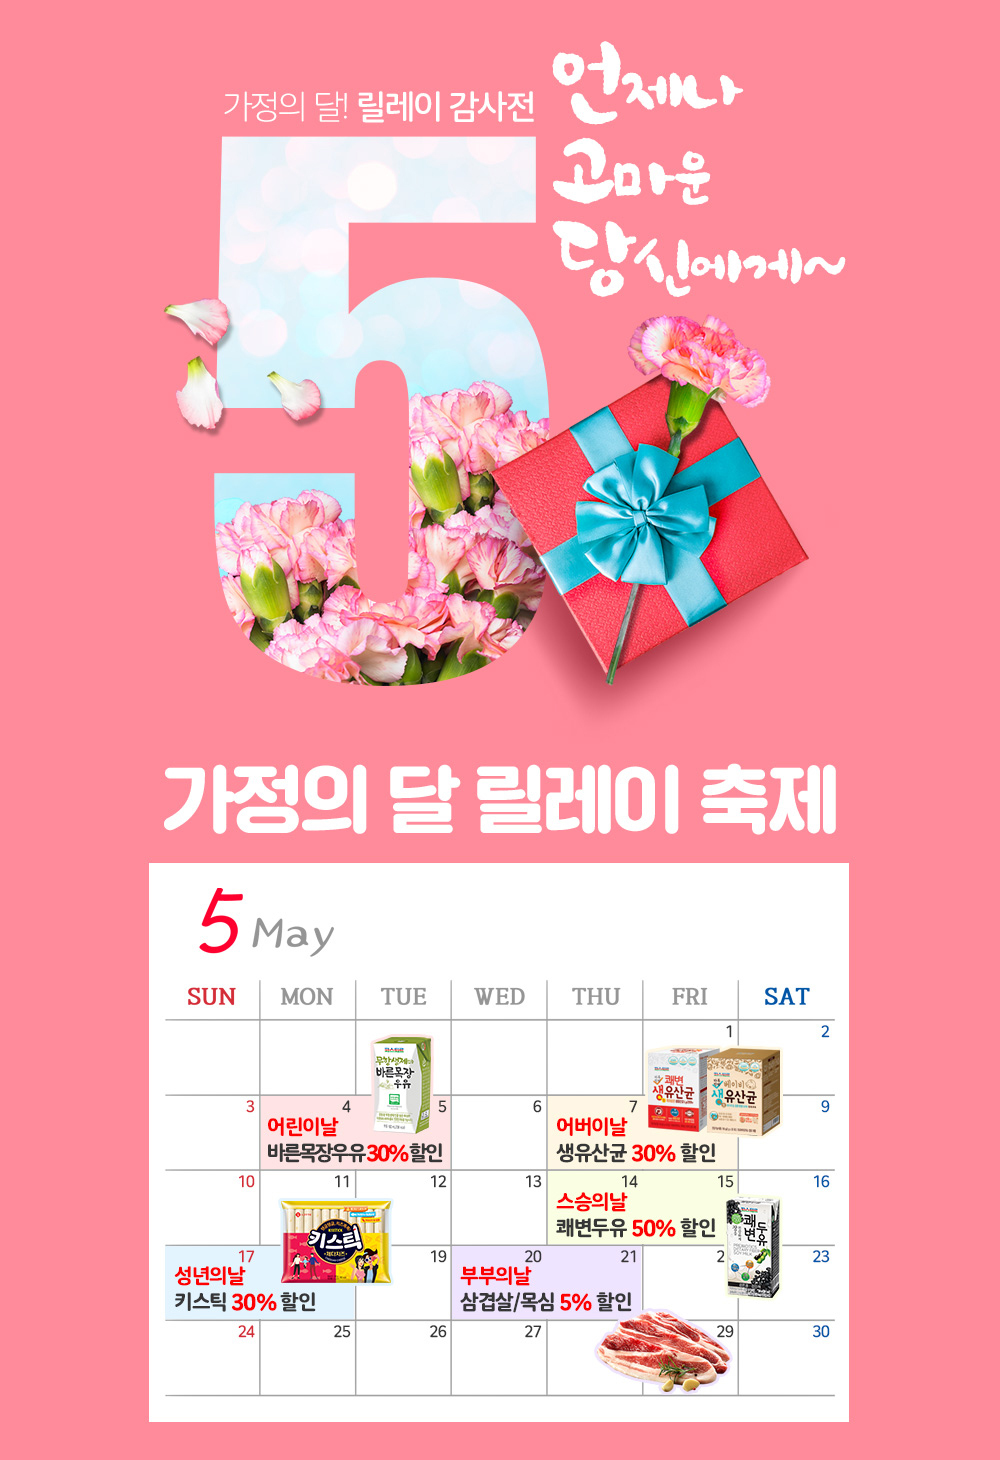 Lotte Food Mall ups promotion marking family month in May. (Lotte Food)